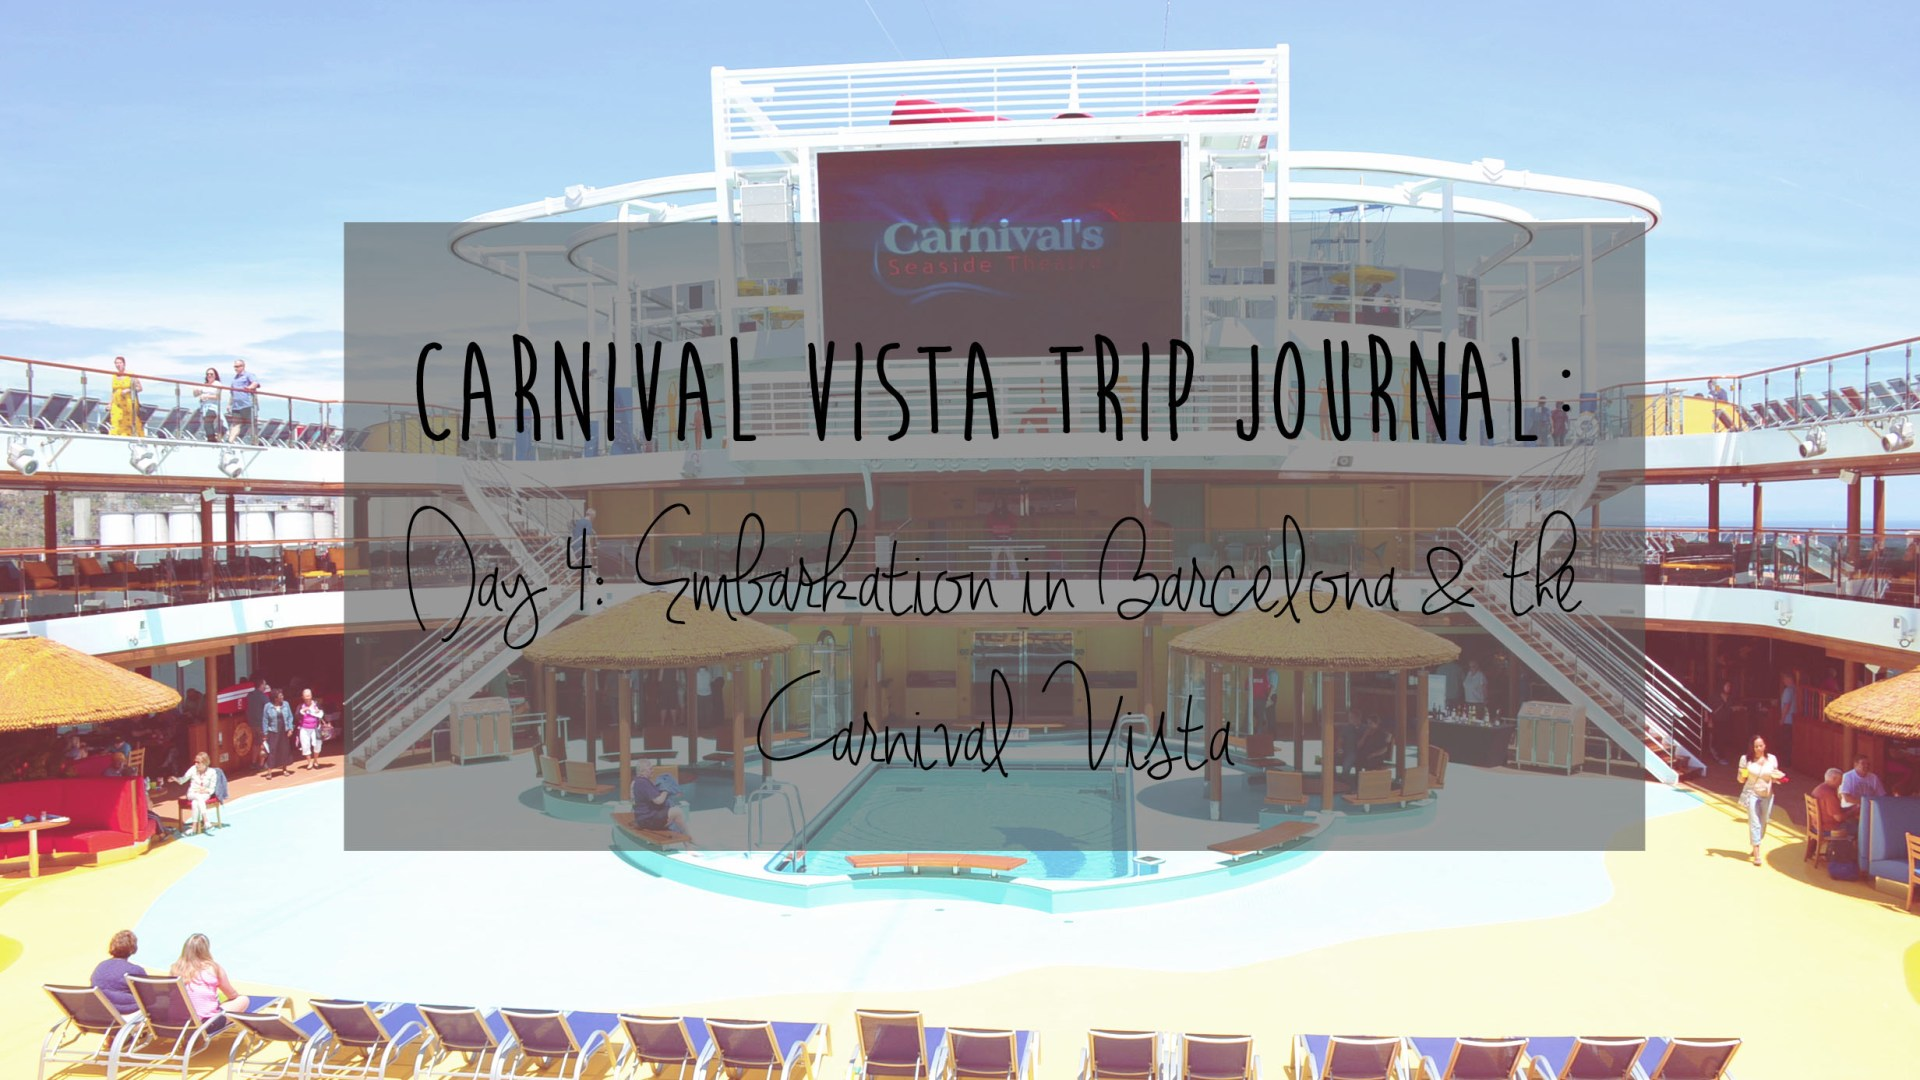 Carnival Vista Review: Day 4 – Embarking on the Carnival Vista